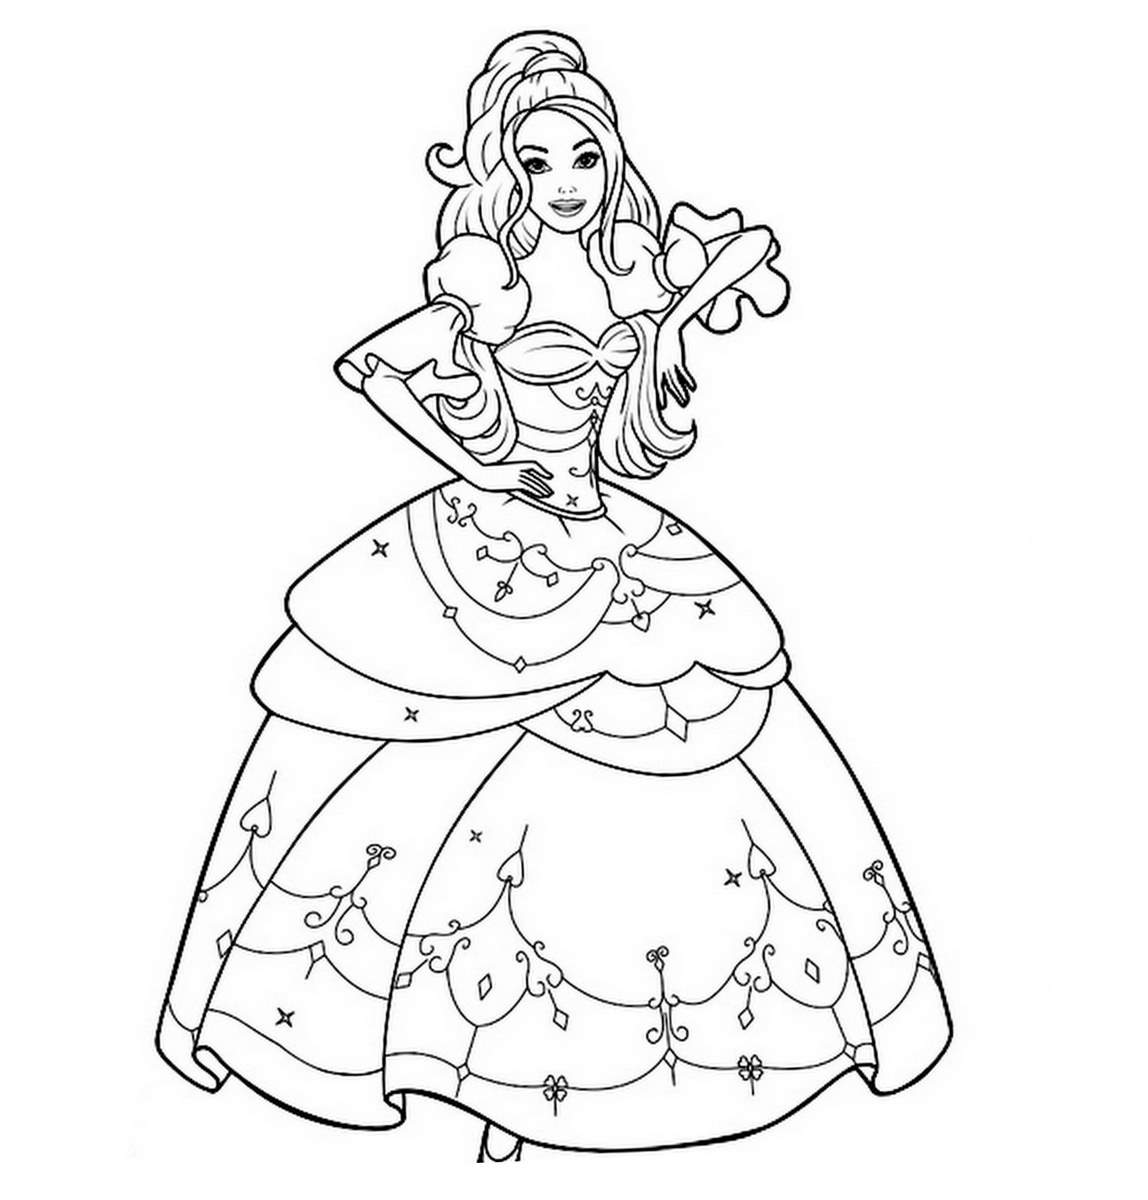 Coloriage princesse image et dessins arts et voyages - Dessin anime barbie princesse ...